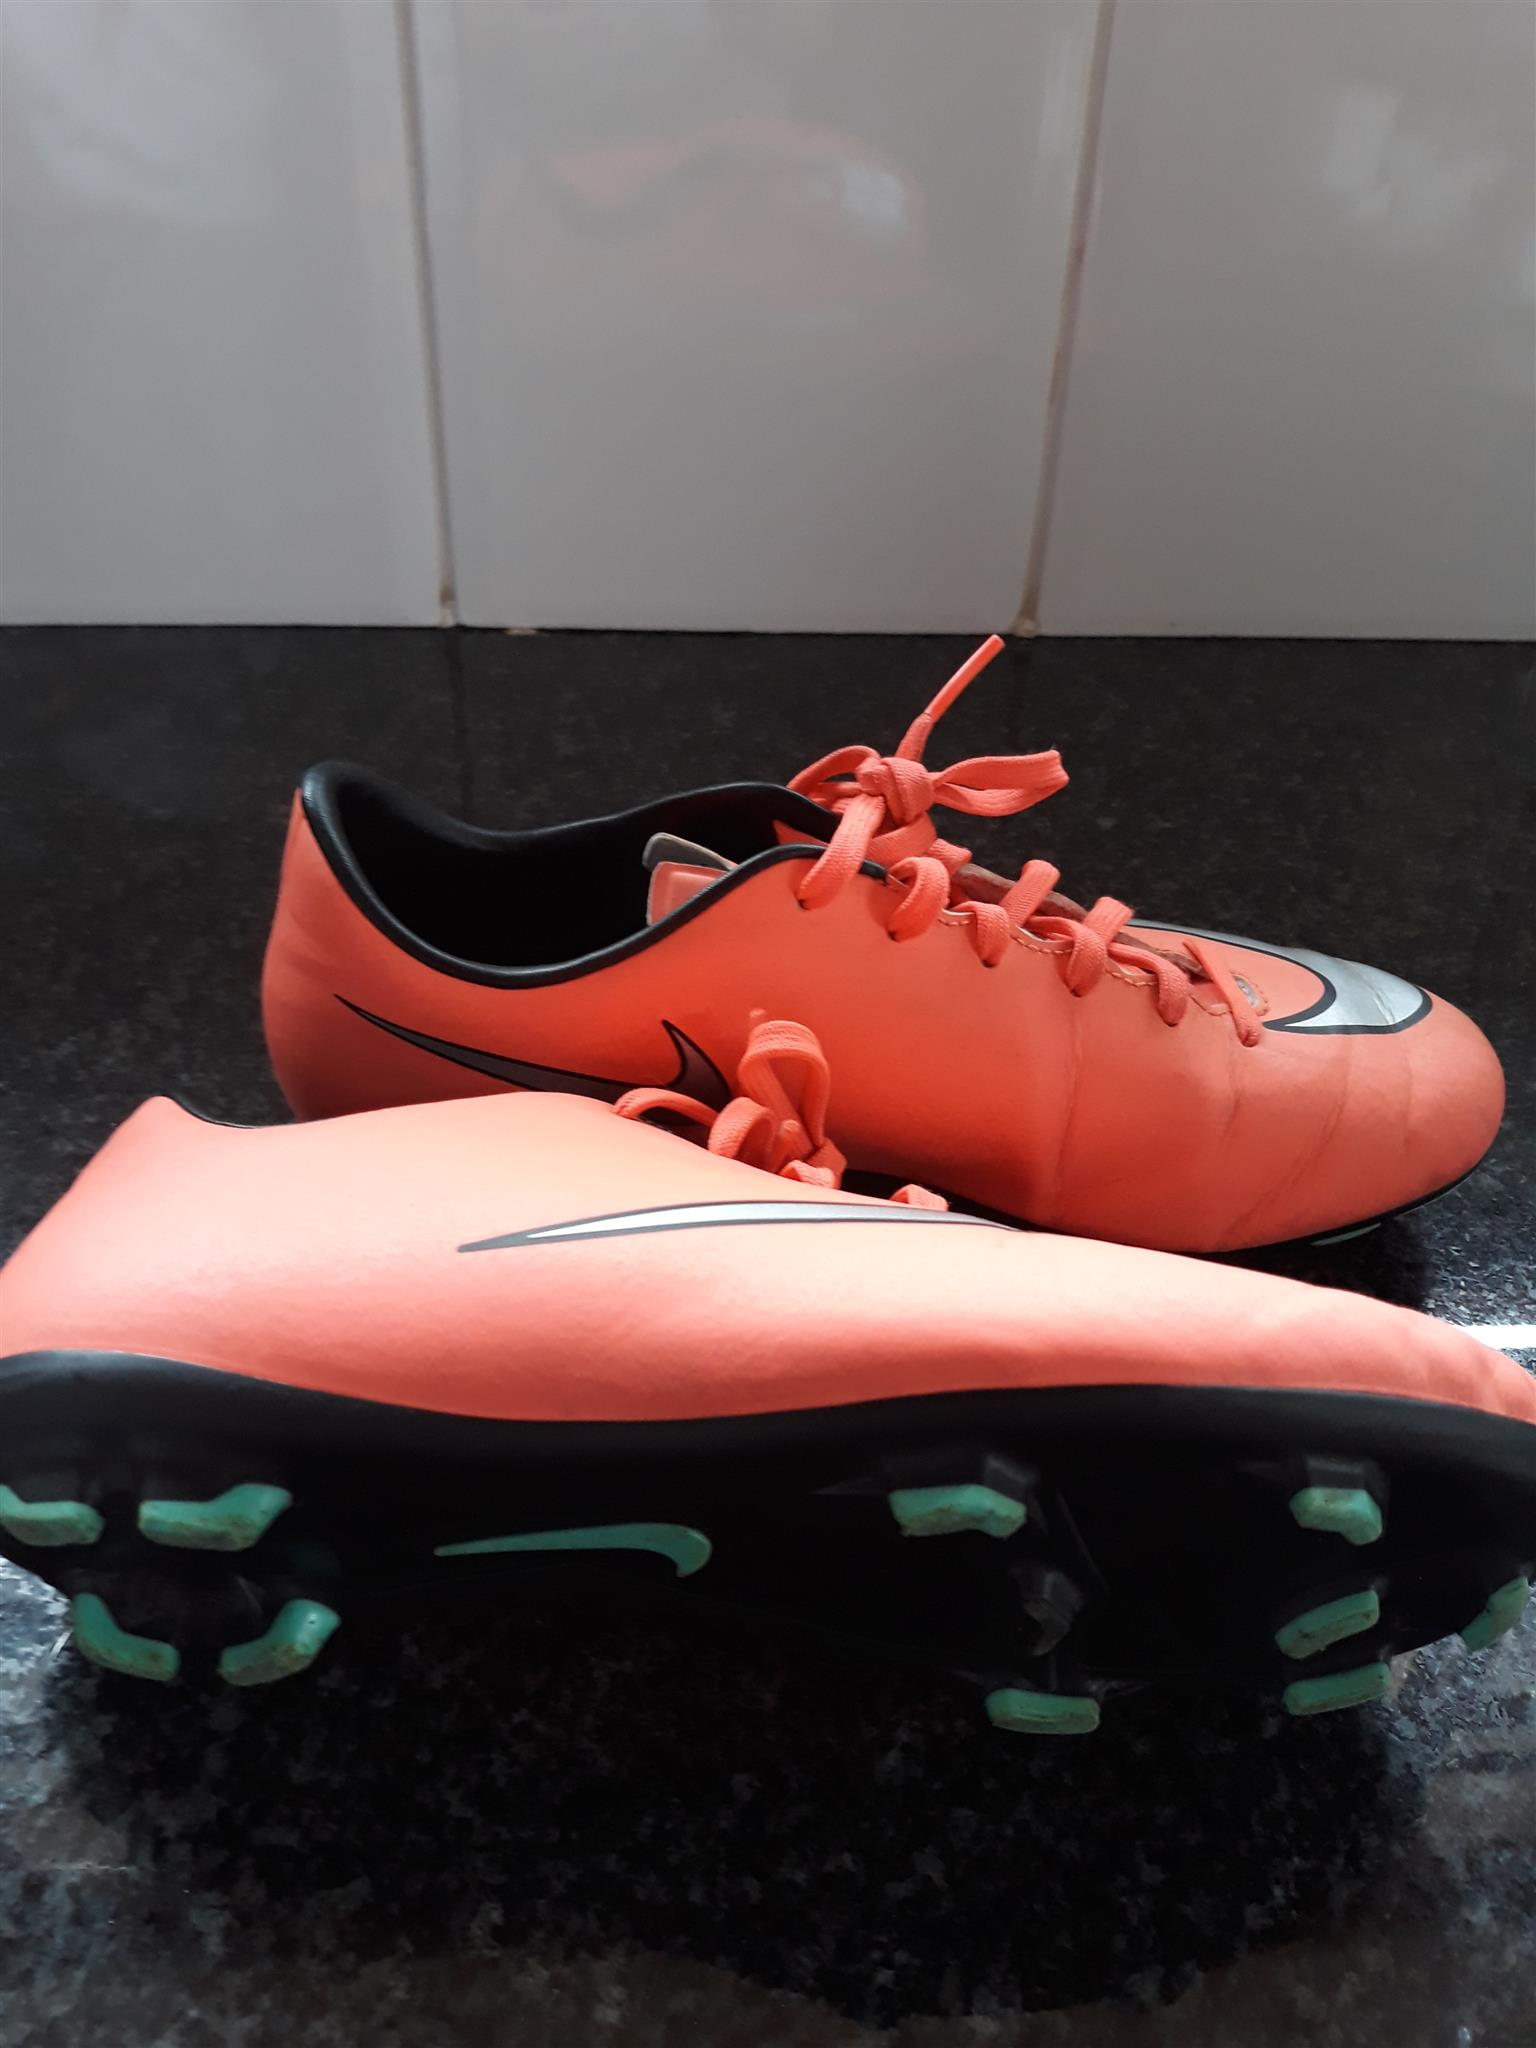 Nike Mercurial Soccer Boots